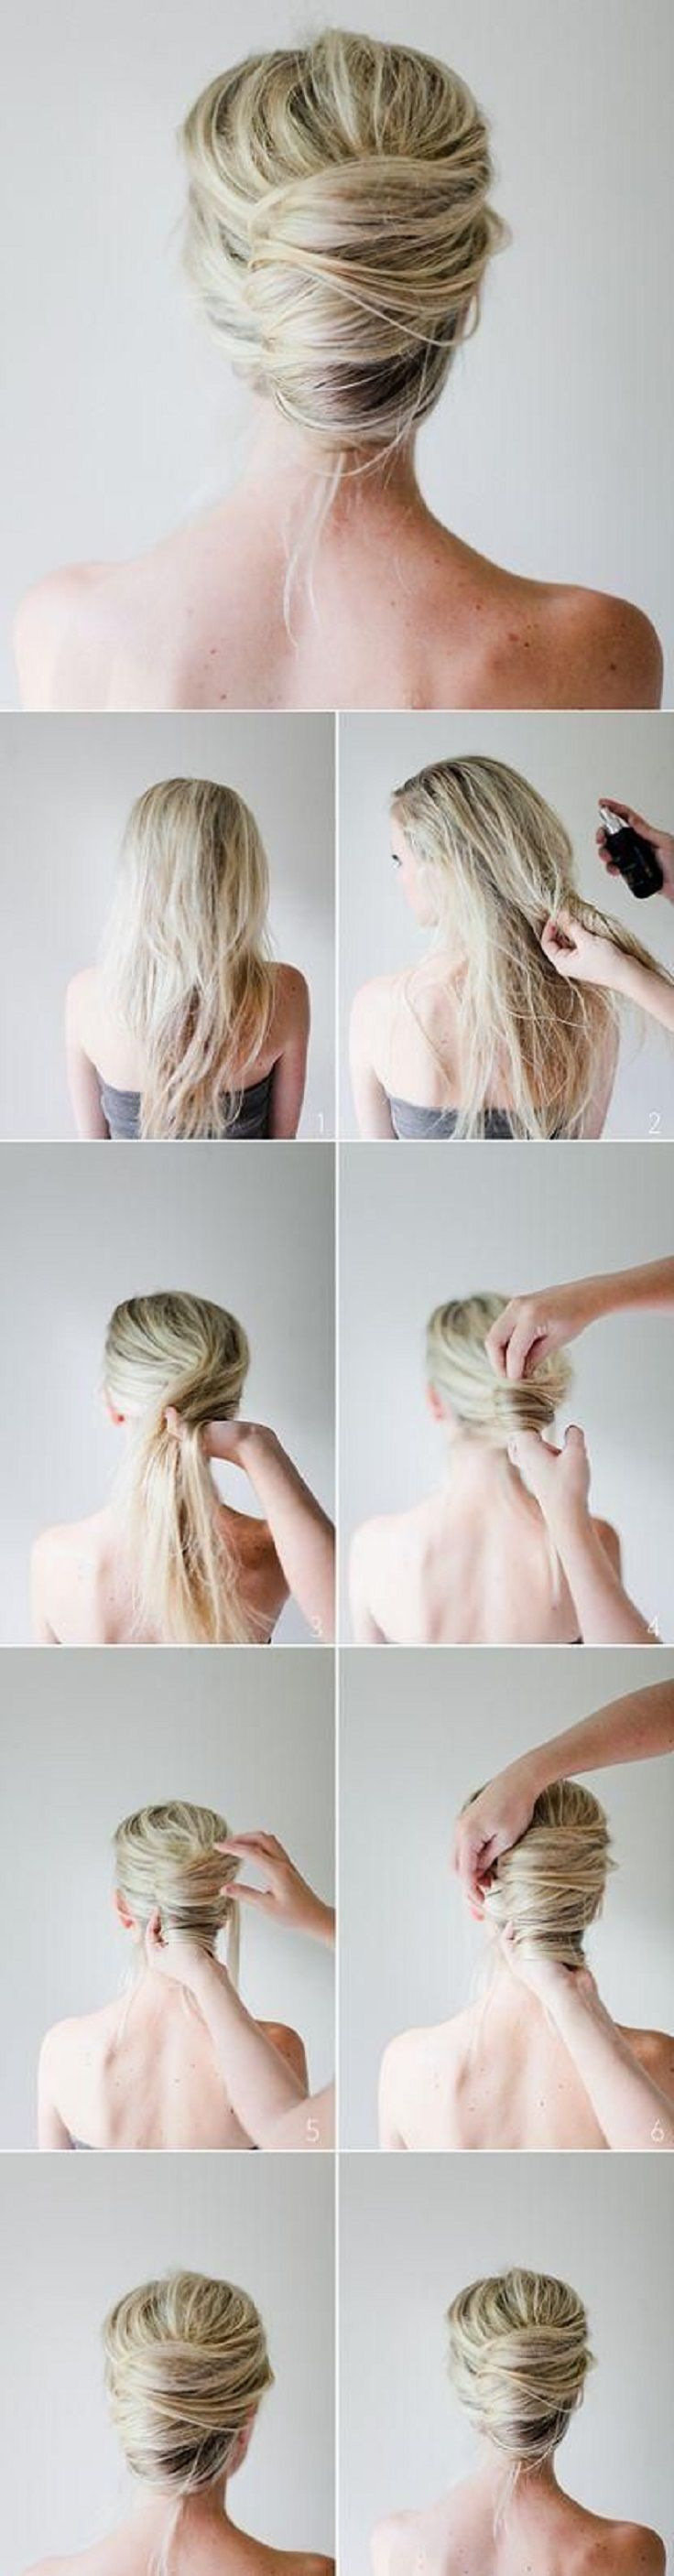 40 best hair images on Pinterest | Coiffure facile, Hairstyle ideas ...